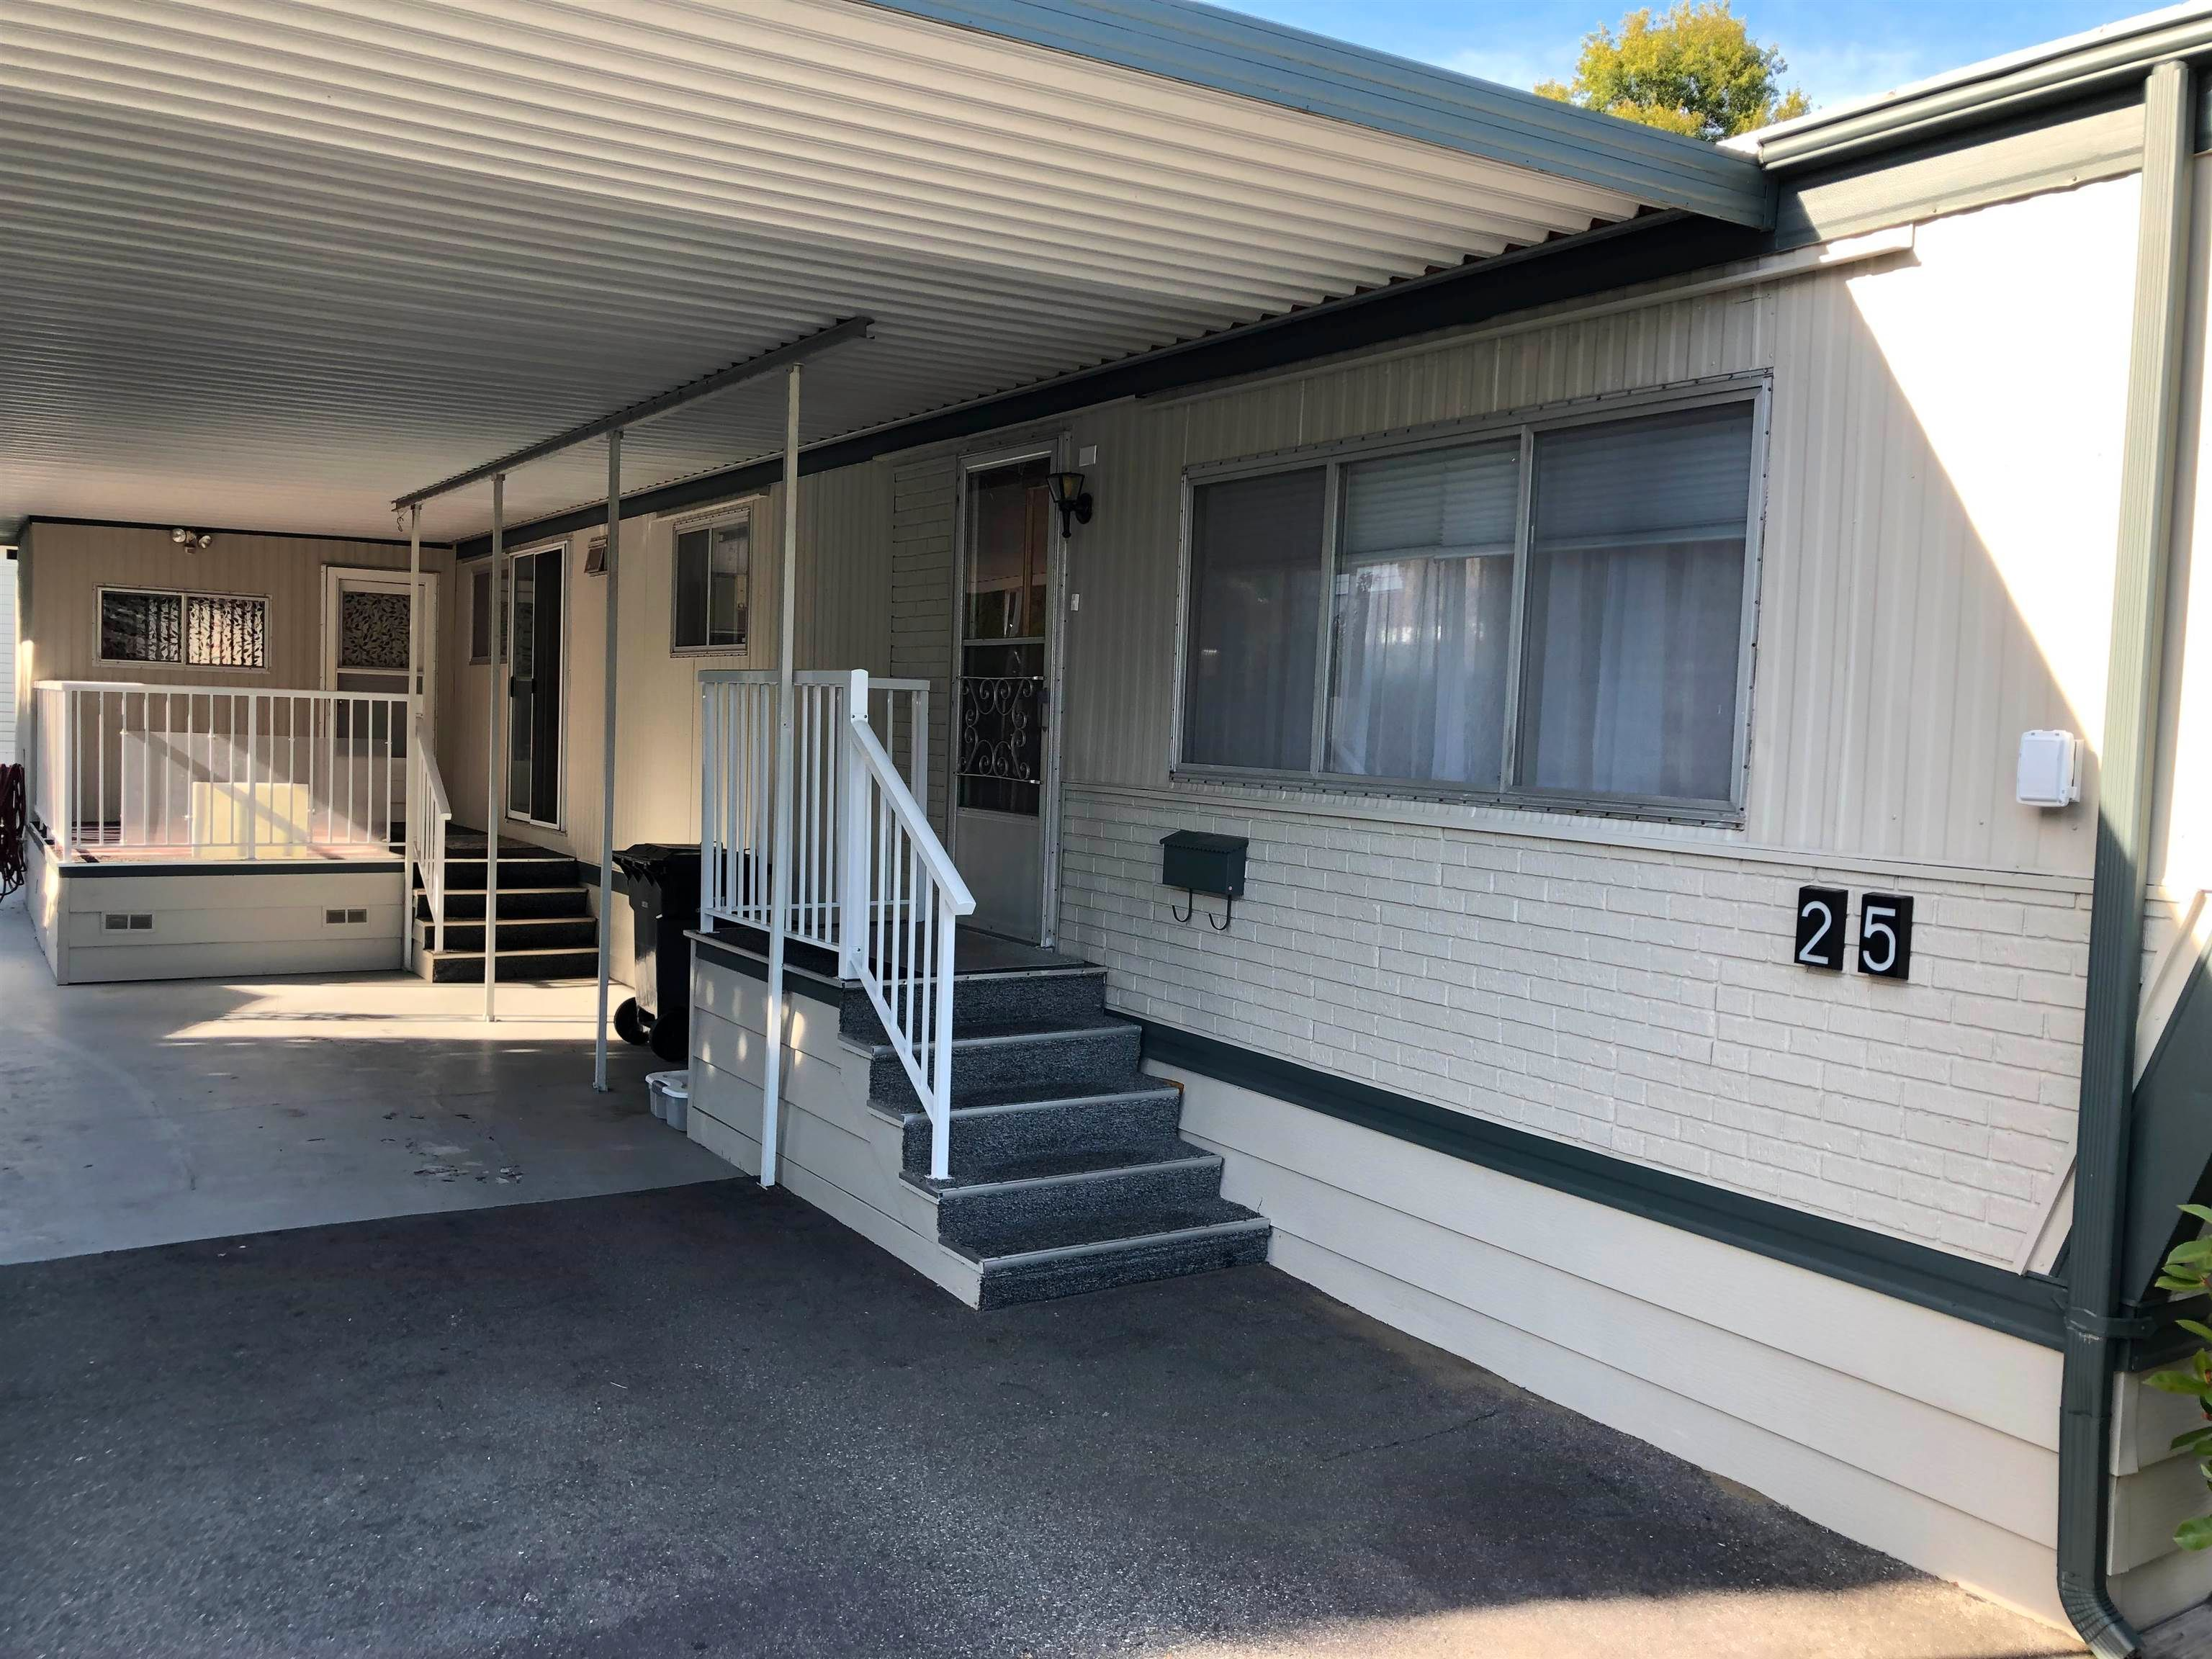 Main Photo: 25 1840 160 Street in Surrey: King George Corridor Manufactured Home for sale (South Surrey White Rock)  : MLS®# R2609635